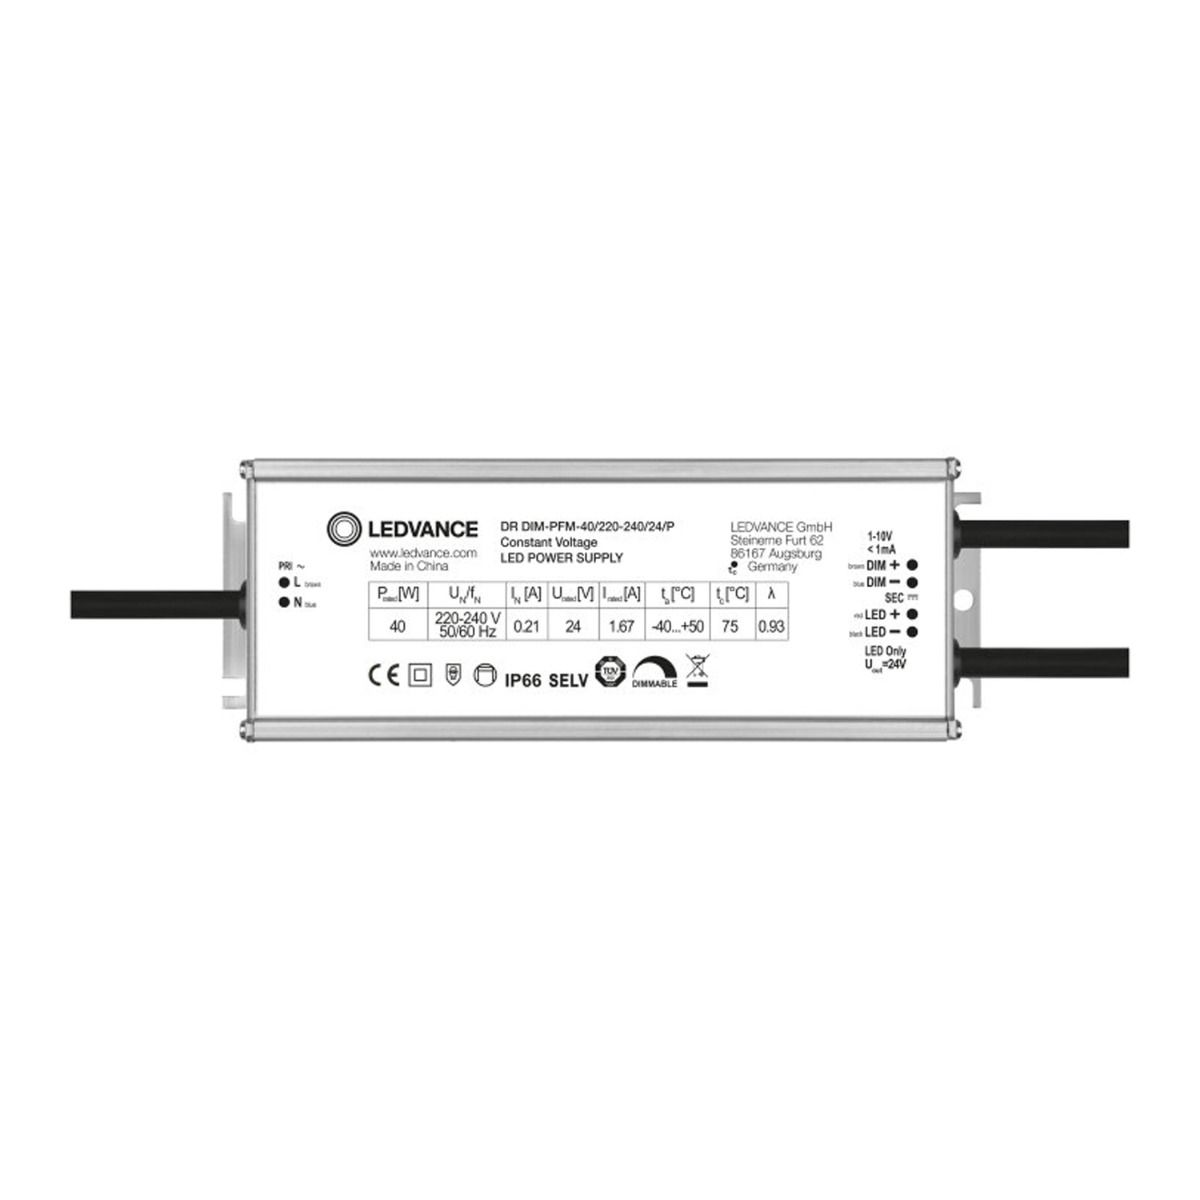 Ledvance LED Driver Buiten Performance 40/220-240/24/P